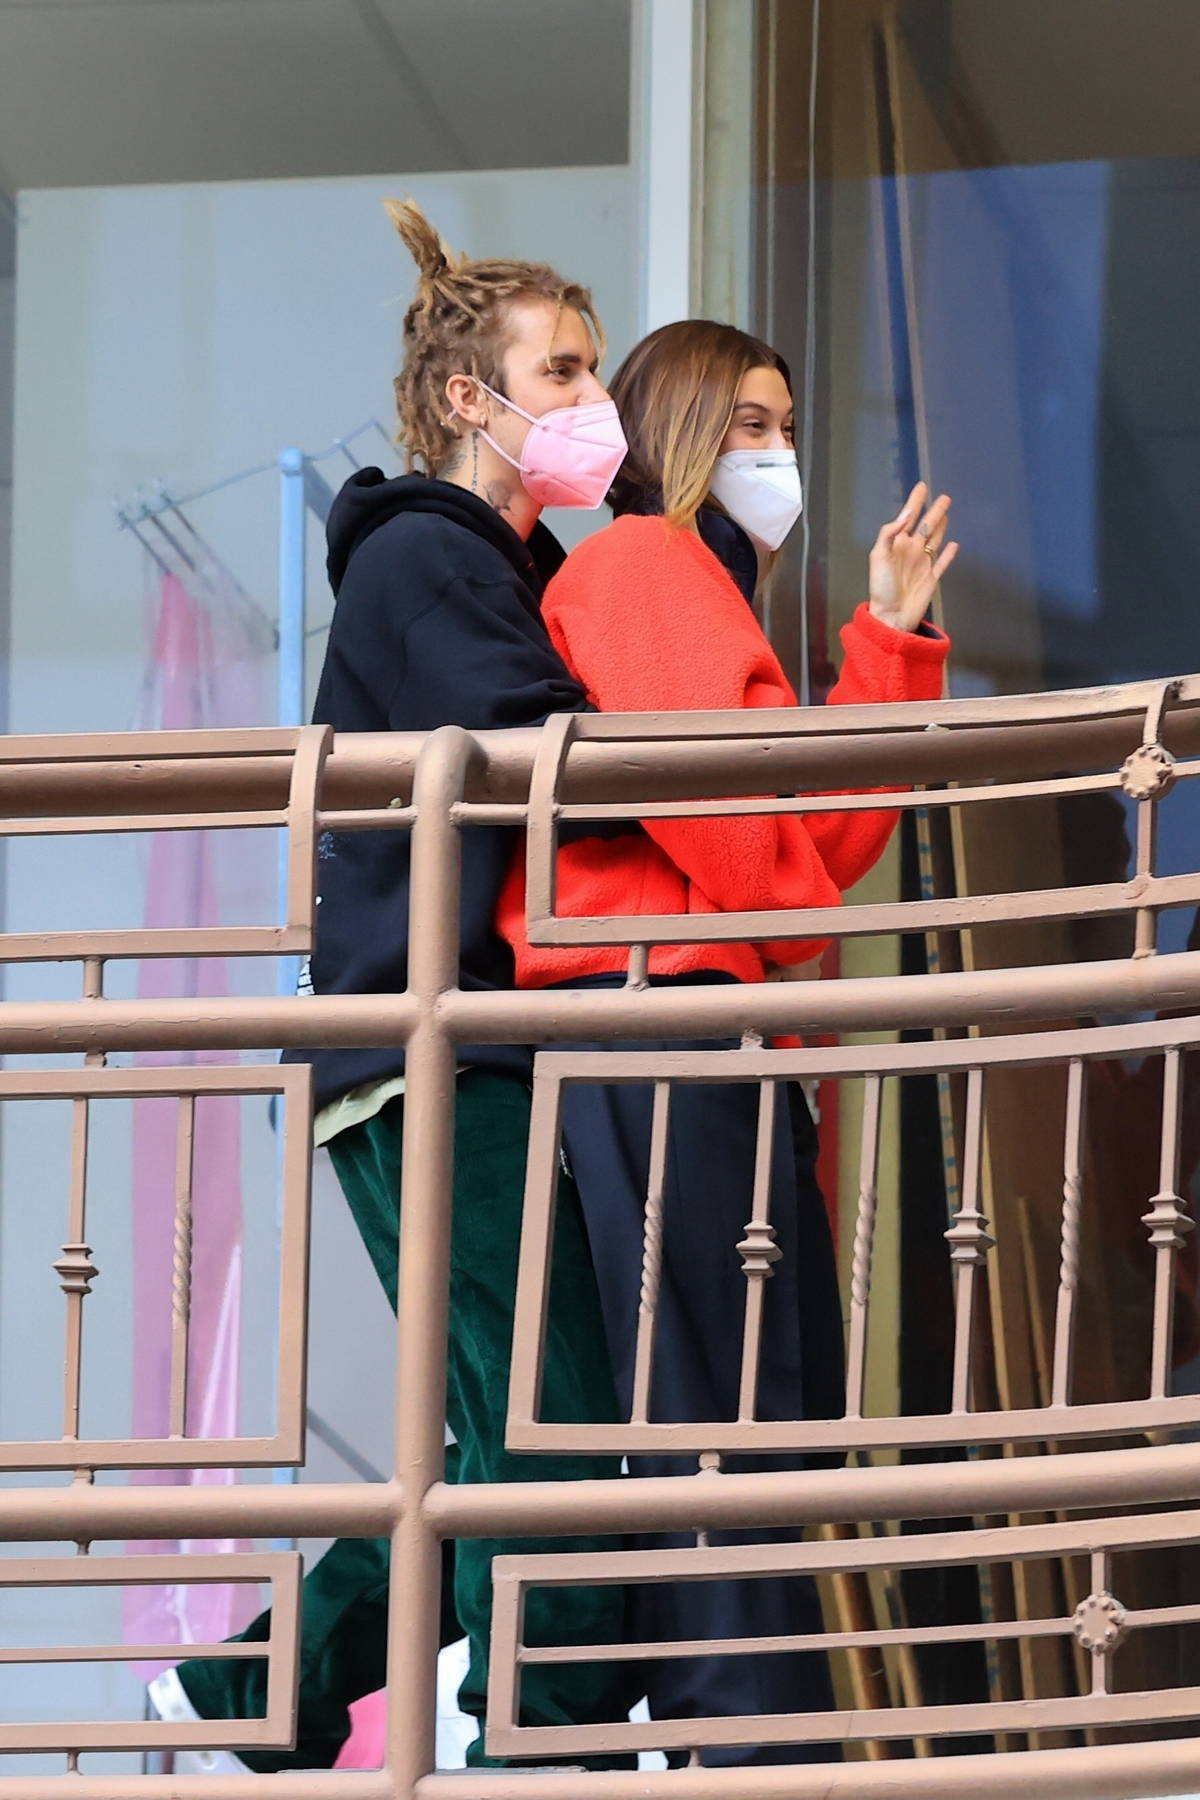 Hailey Bieber visits a hair salon before heading out to dinner with Justin Bieber at Sushi Park in Los Angeles